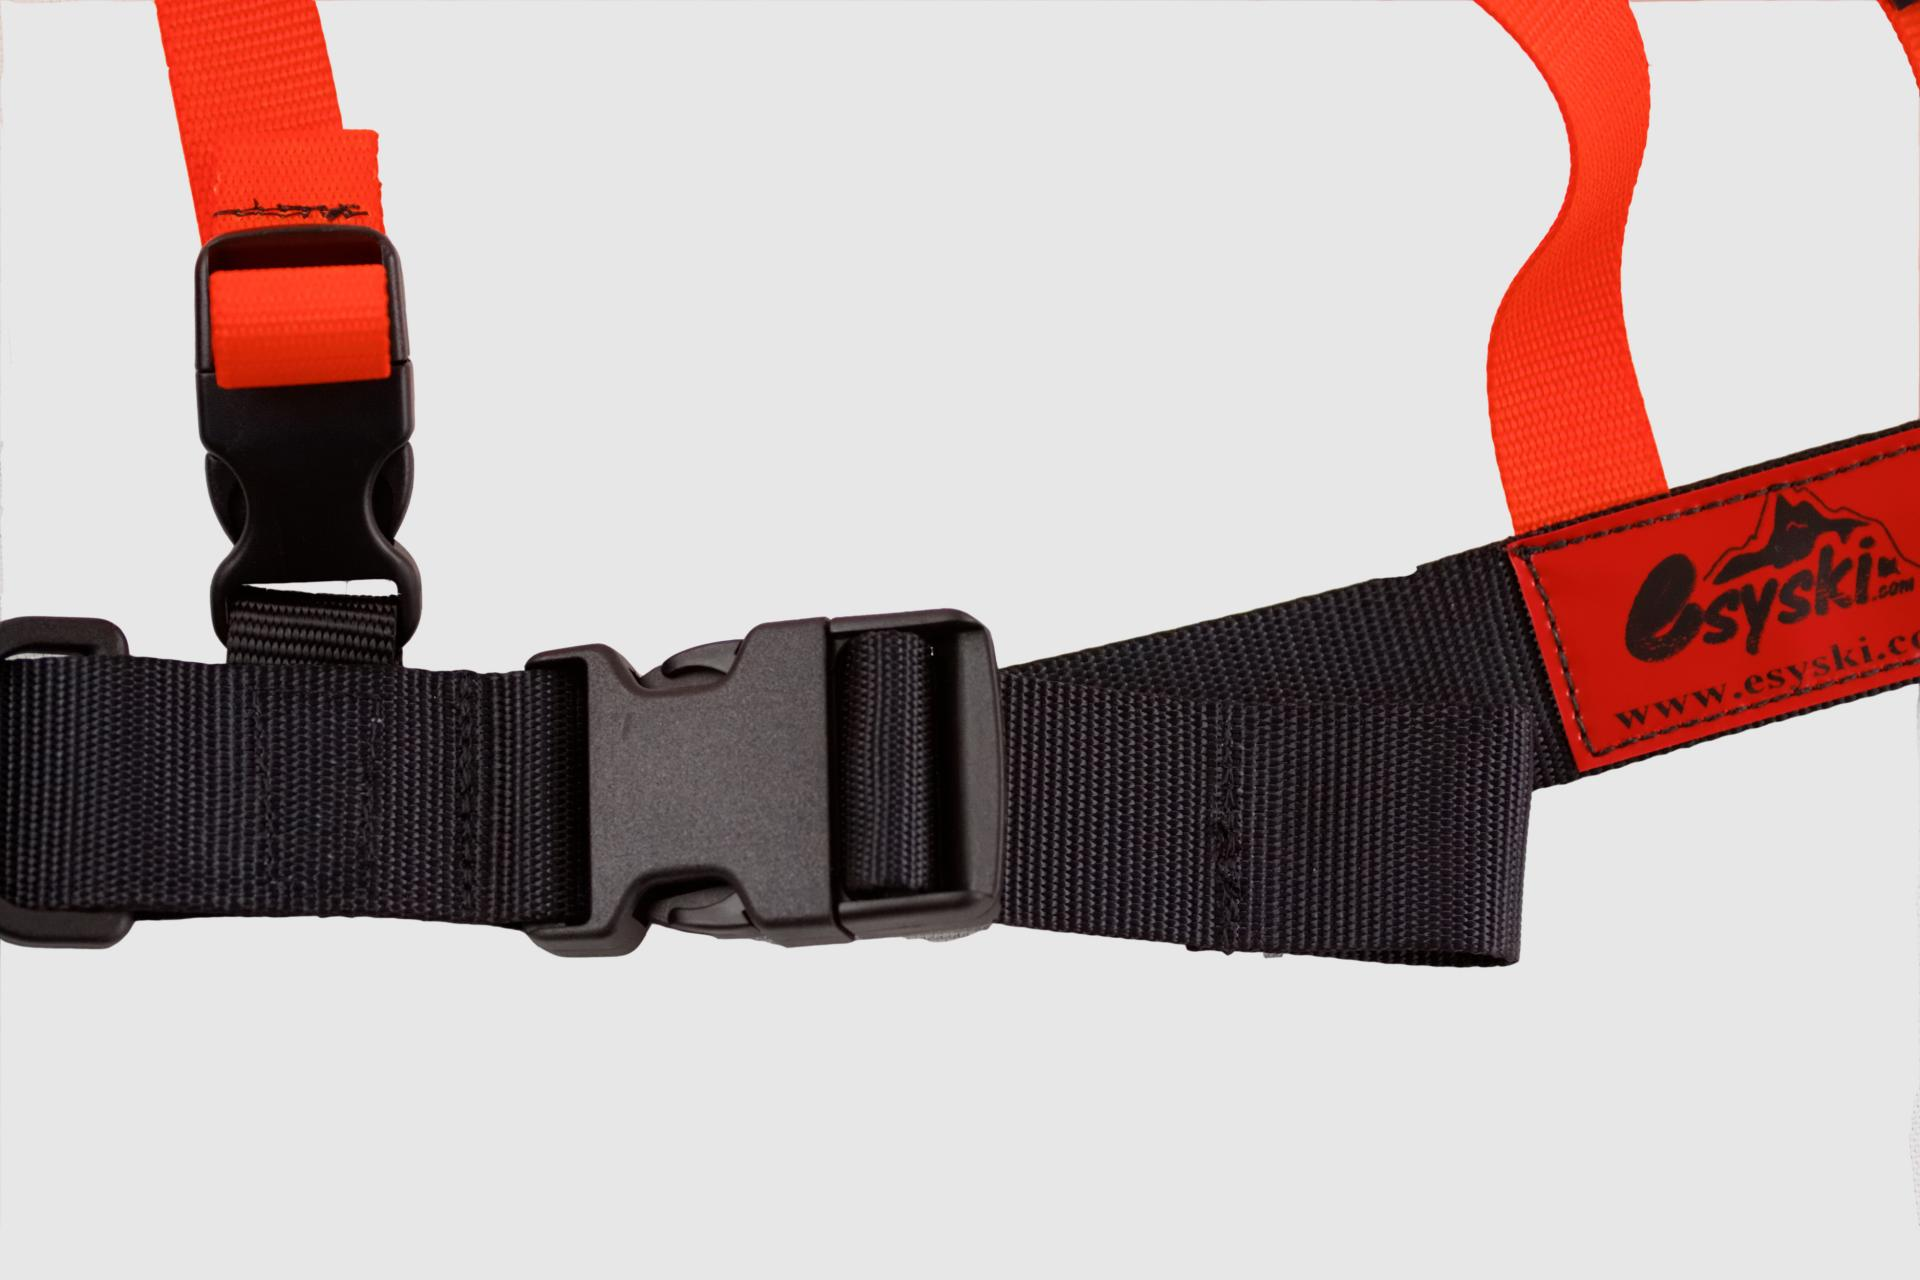 Adjustable and detachable buckles